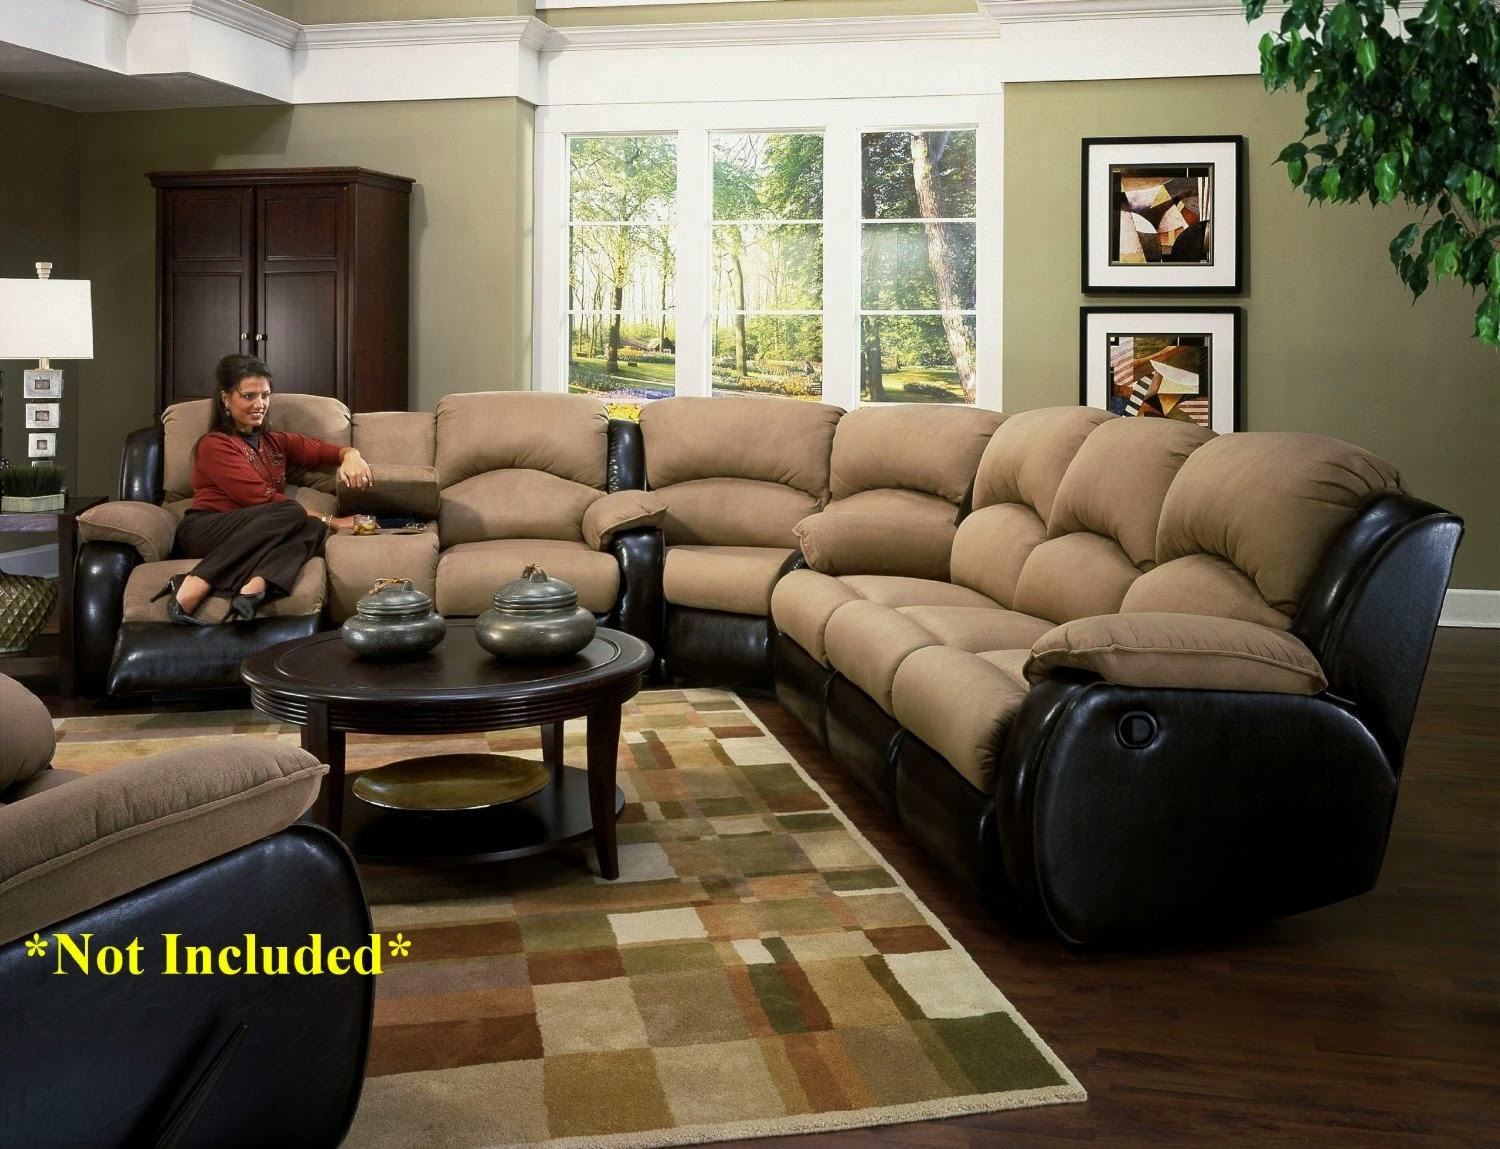 Recline Designs 706 31 Jupiter Dual Reclining Sectional Sofa